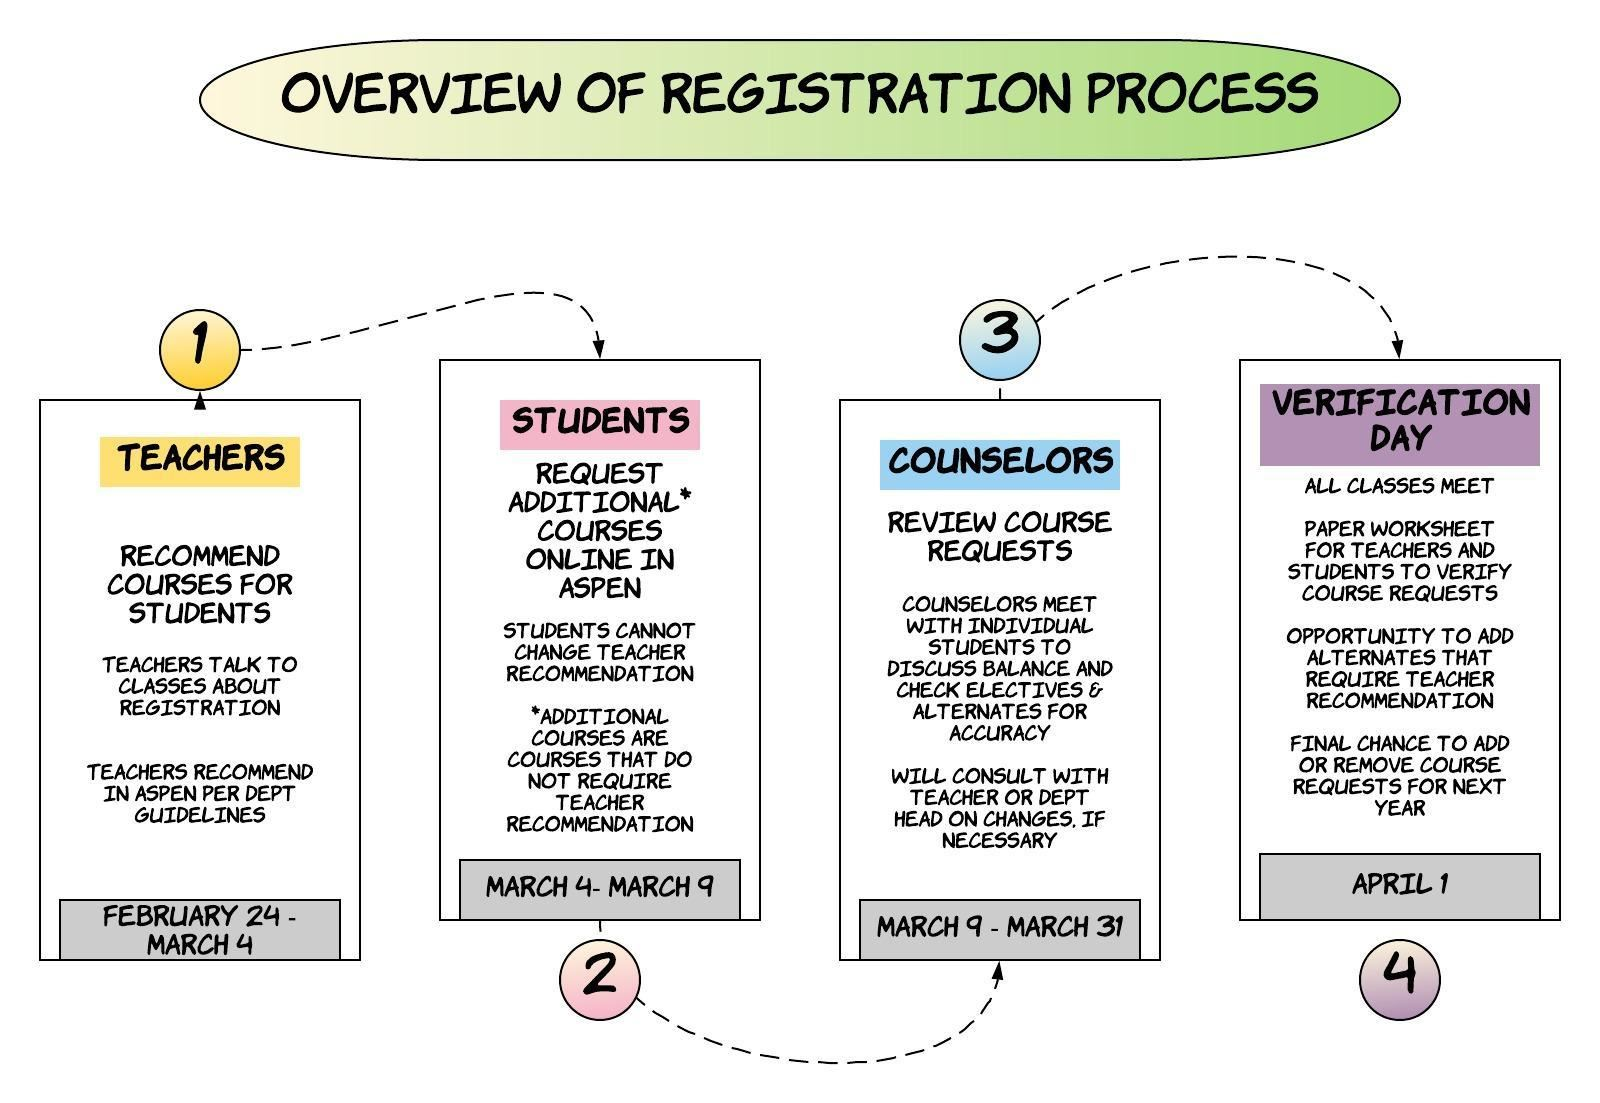 Overview of Registration Process 2020-2021